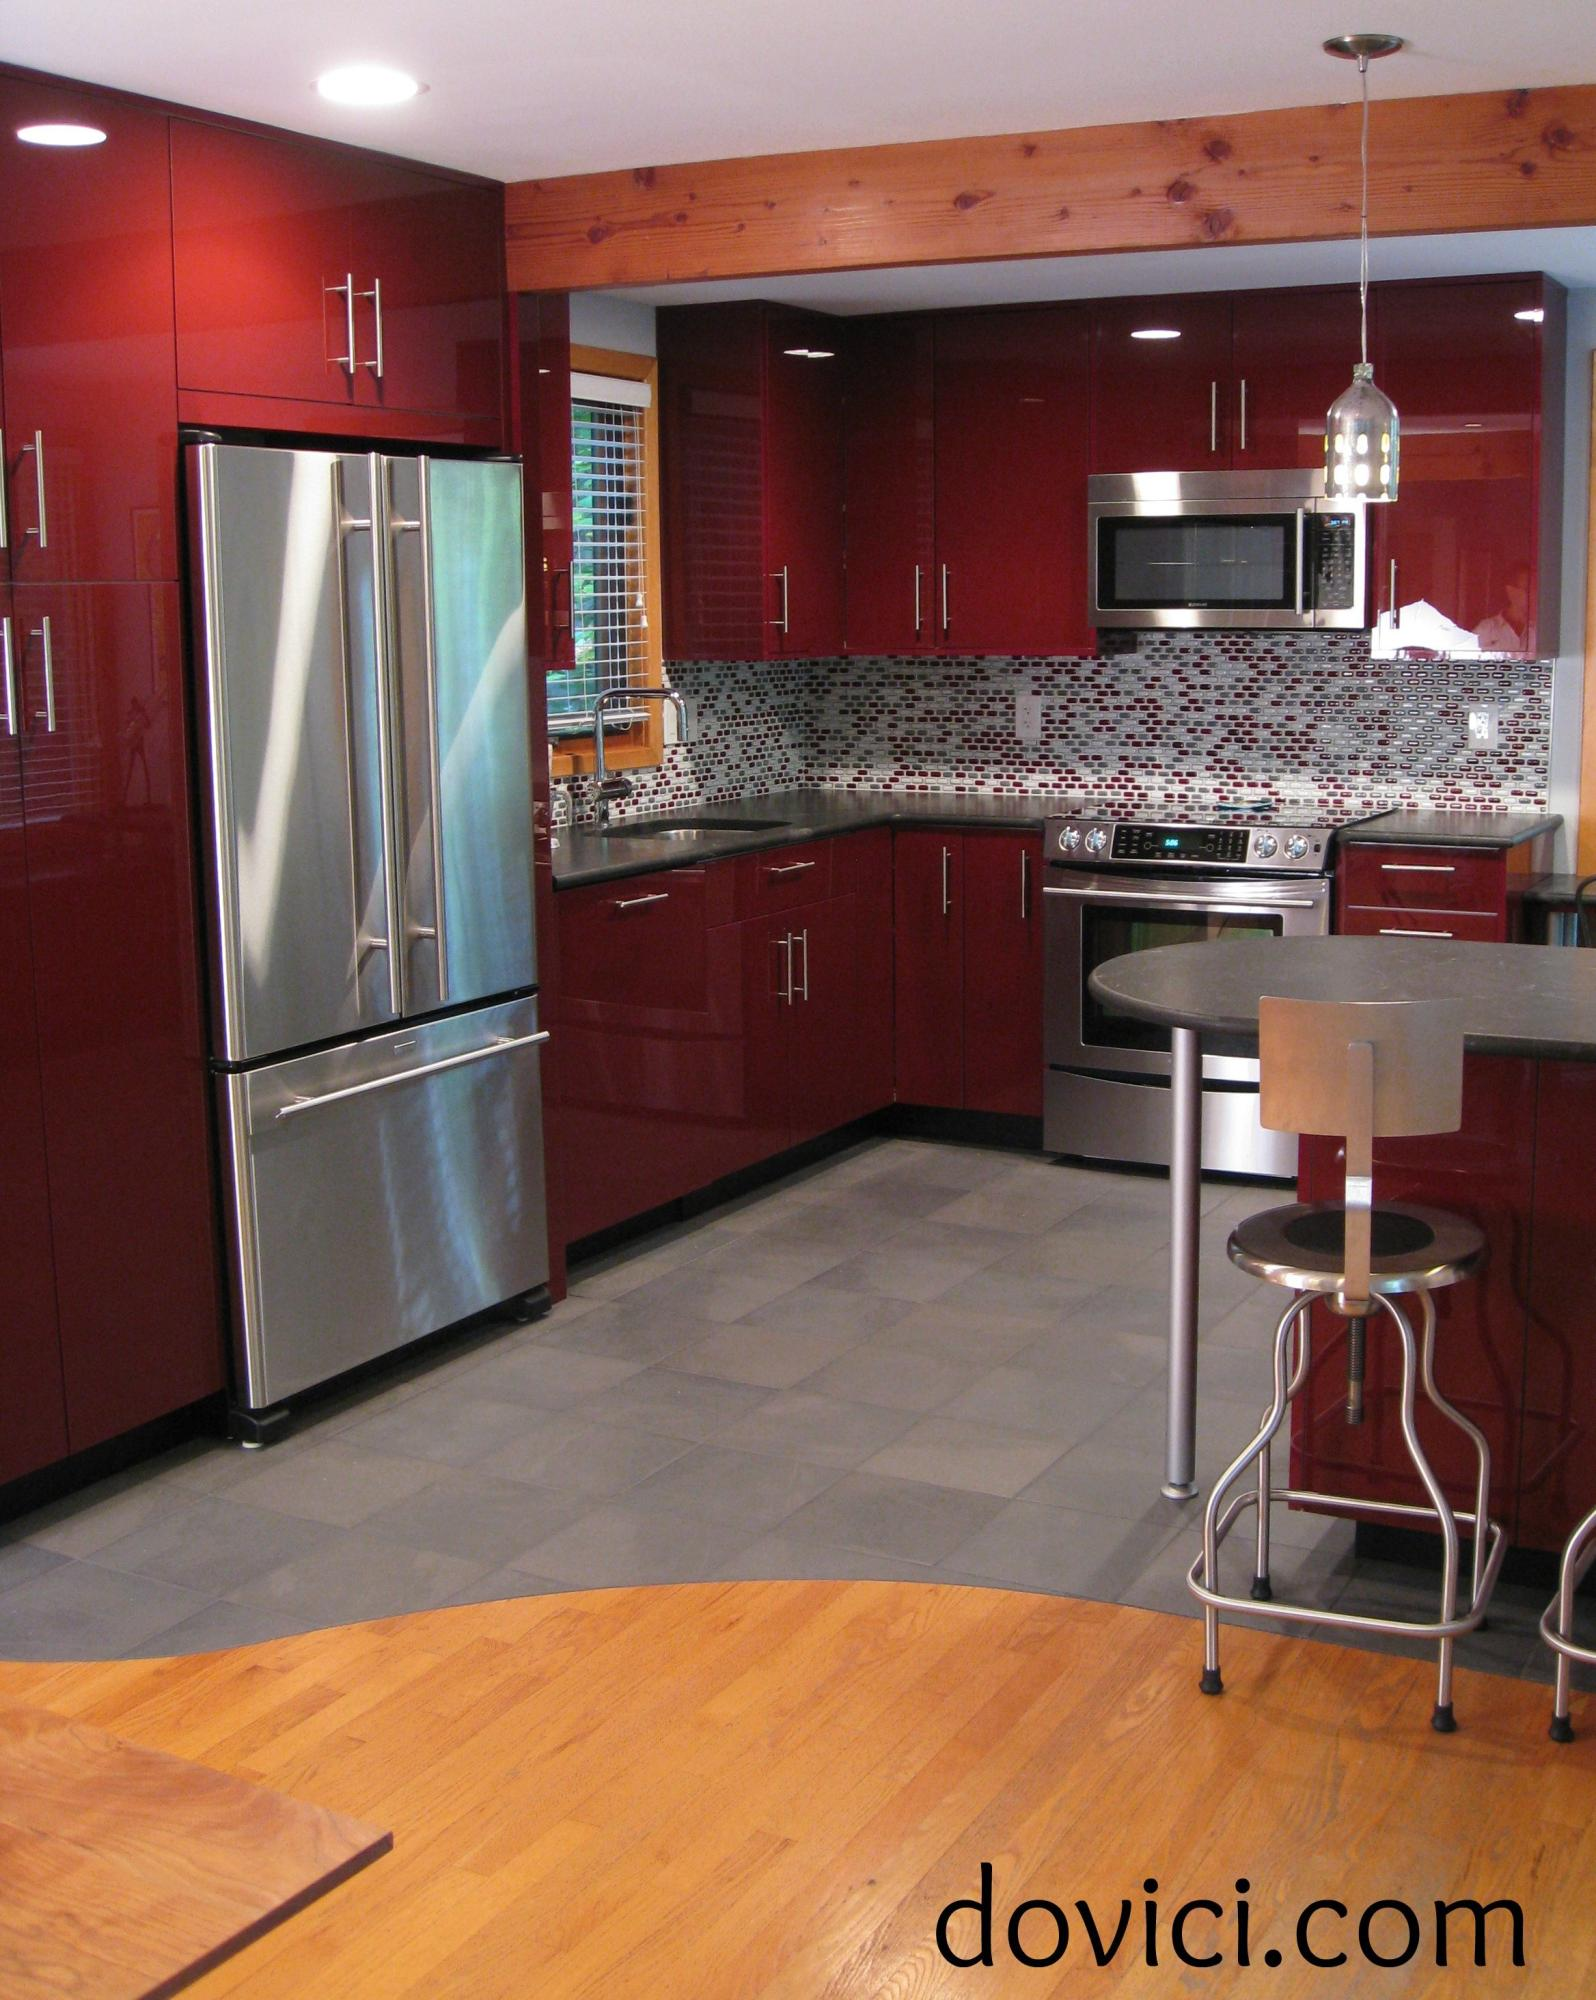 Kitchen And Bath Remodeling U2022 Custom Furniture U2022 Design Services U2022 Certified  Kitchen Designer